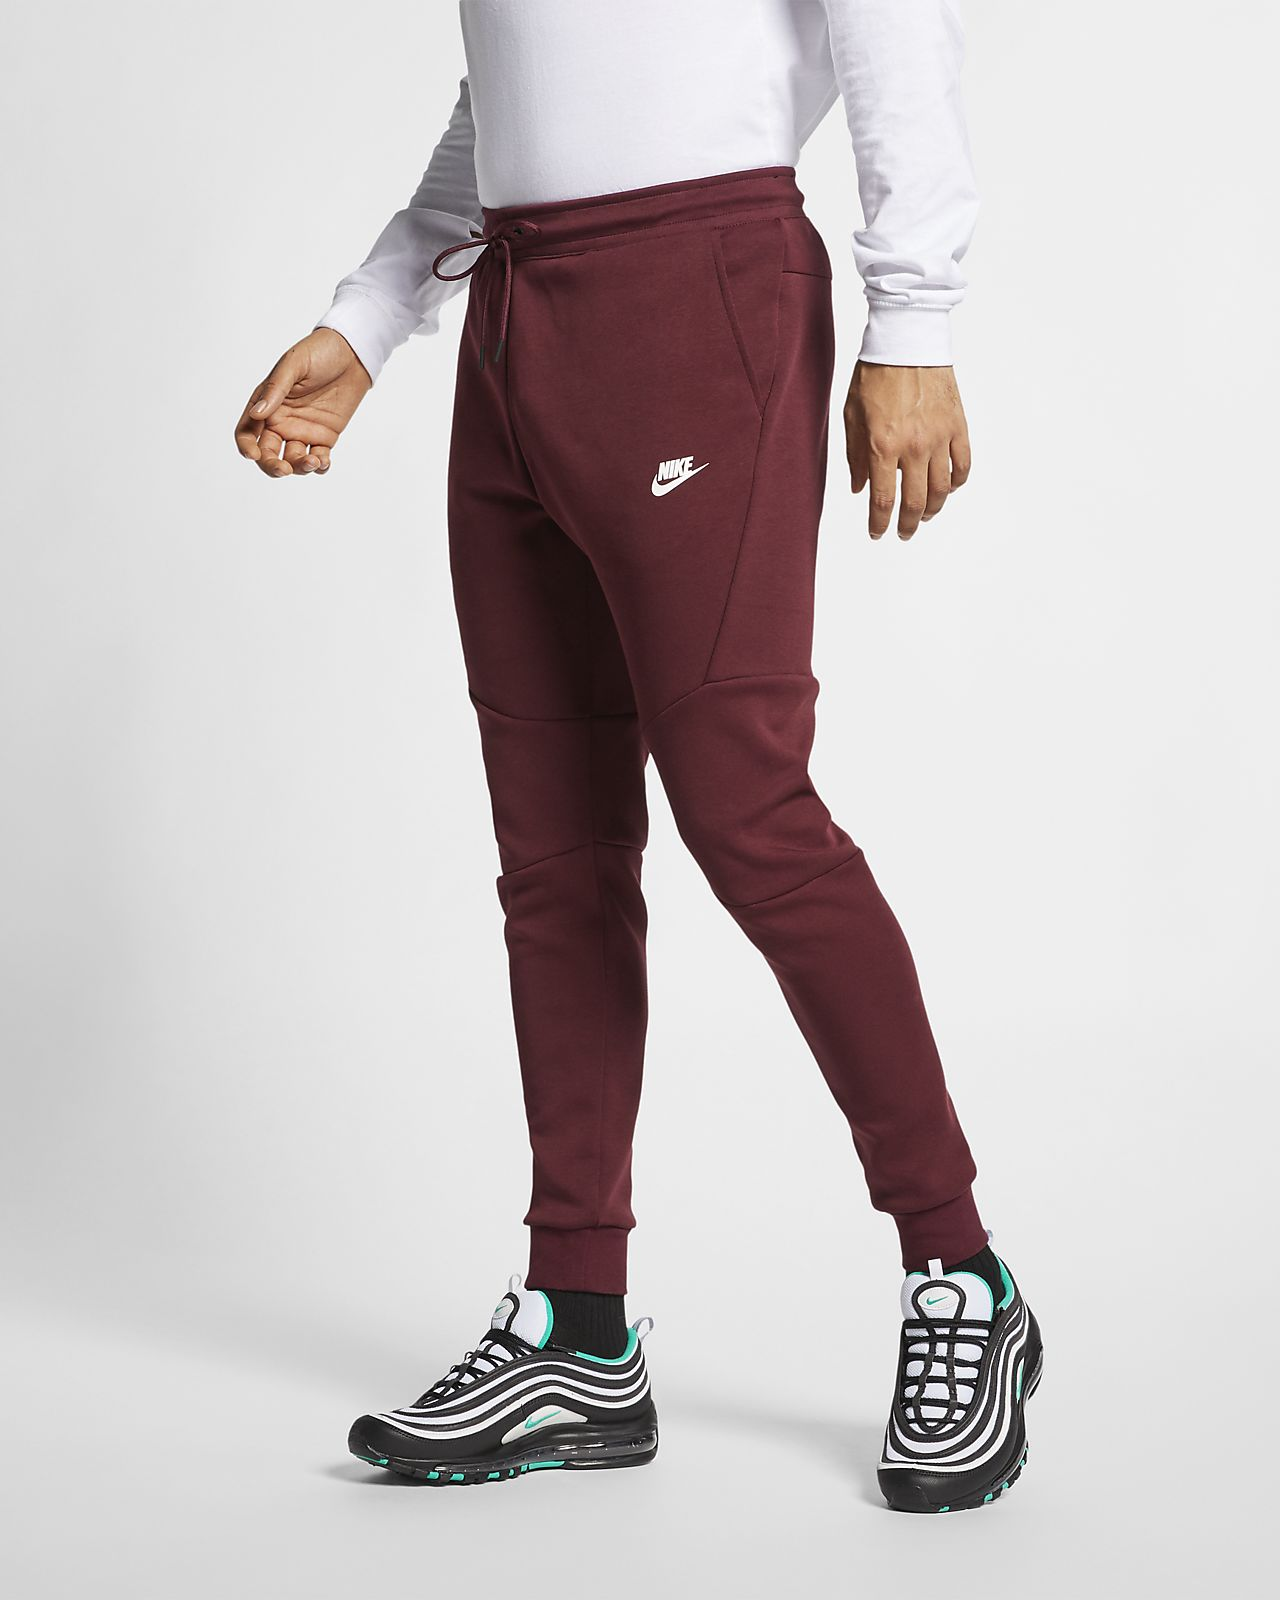 b76be3e3bf79 Nike Sportswear Tech Fleece Men s Joggers. Nike.com AU